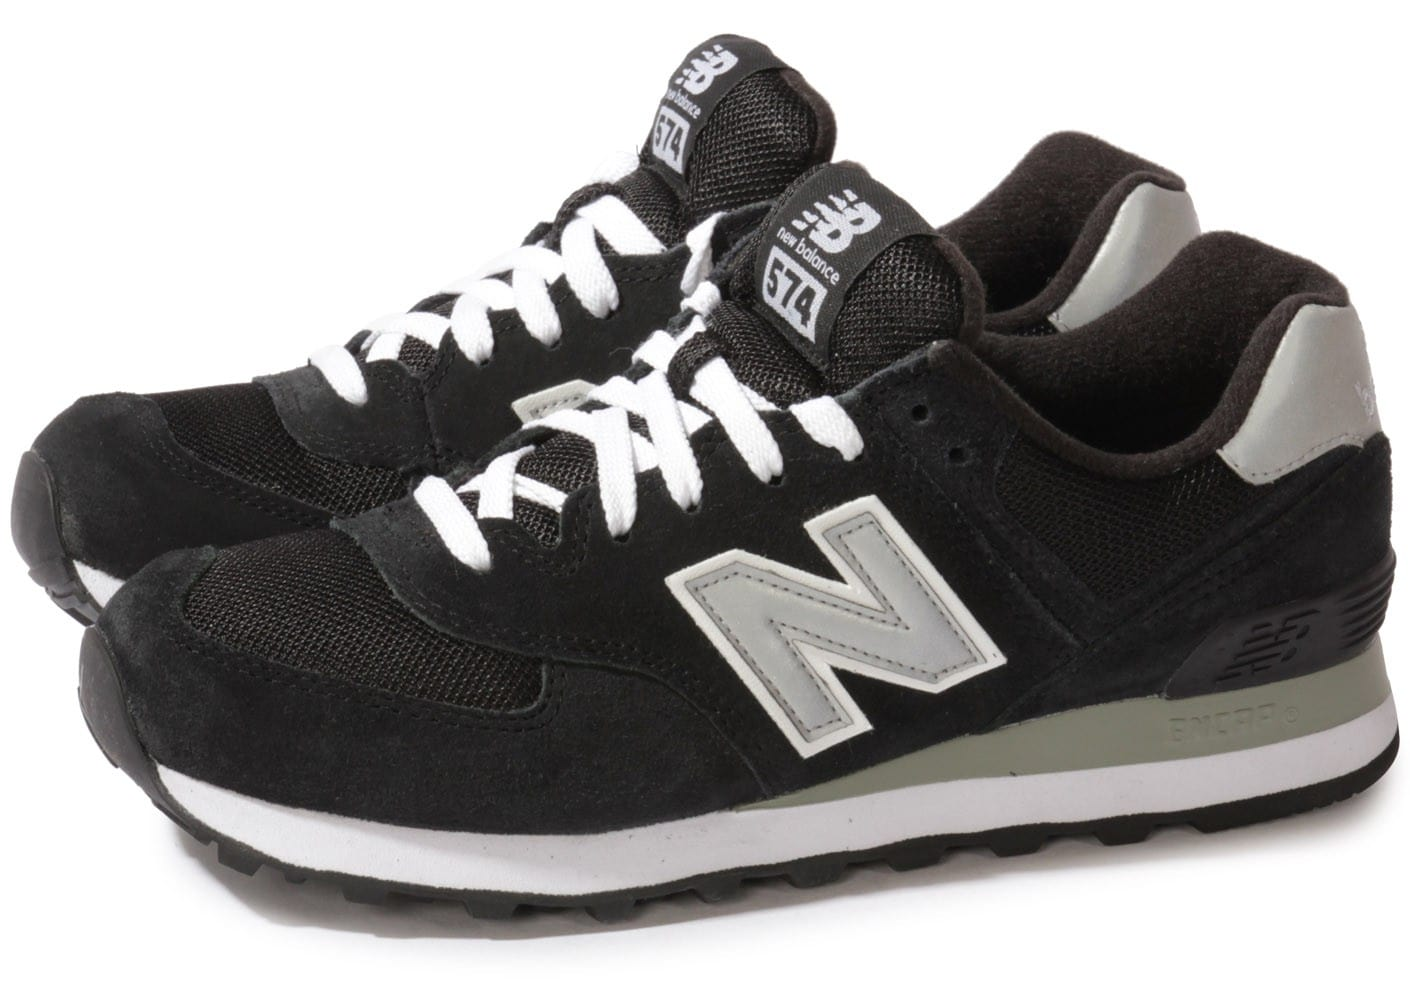 new balance ml574 nk d noire chaussures baskets homme. Black Bedroom Furniture Sets. Home Design Ideas